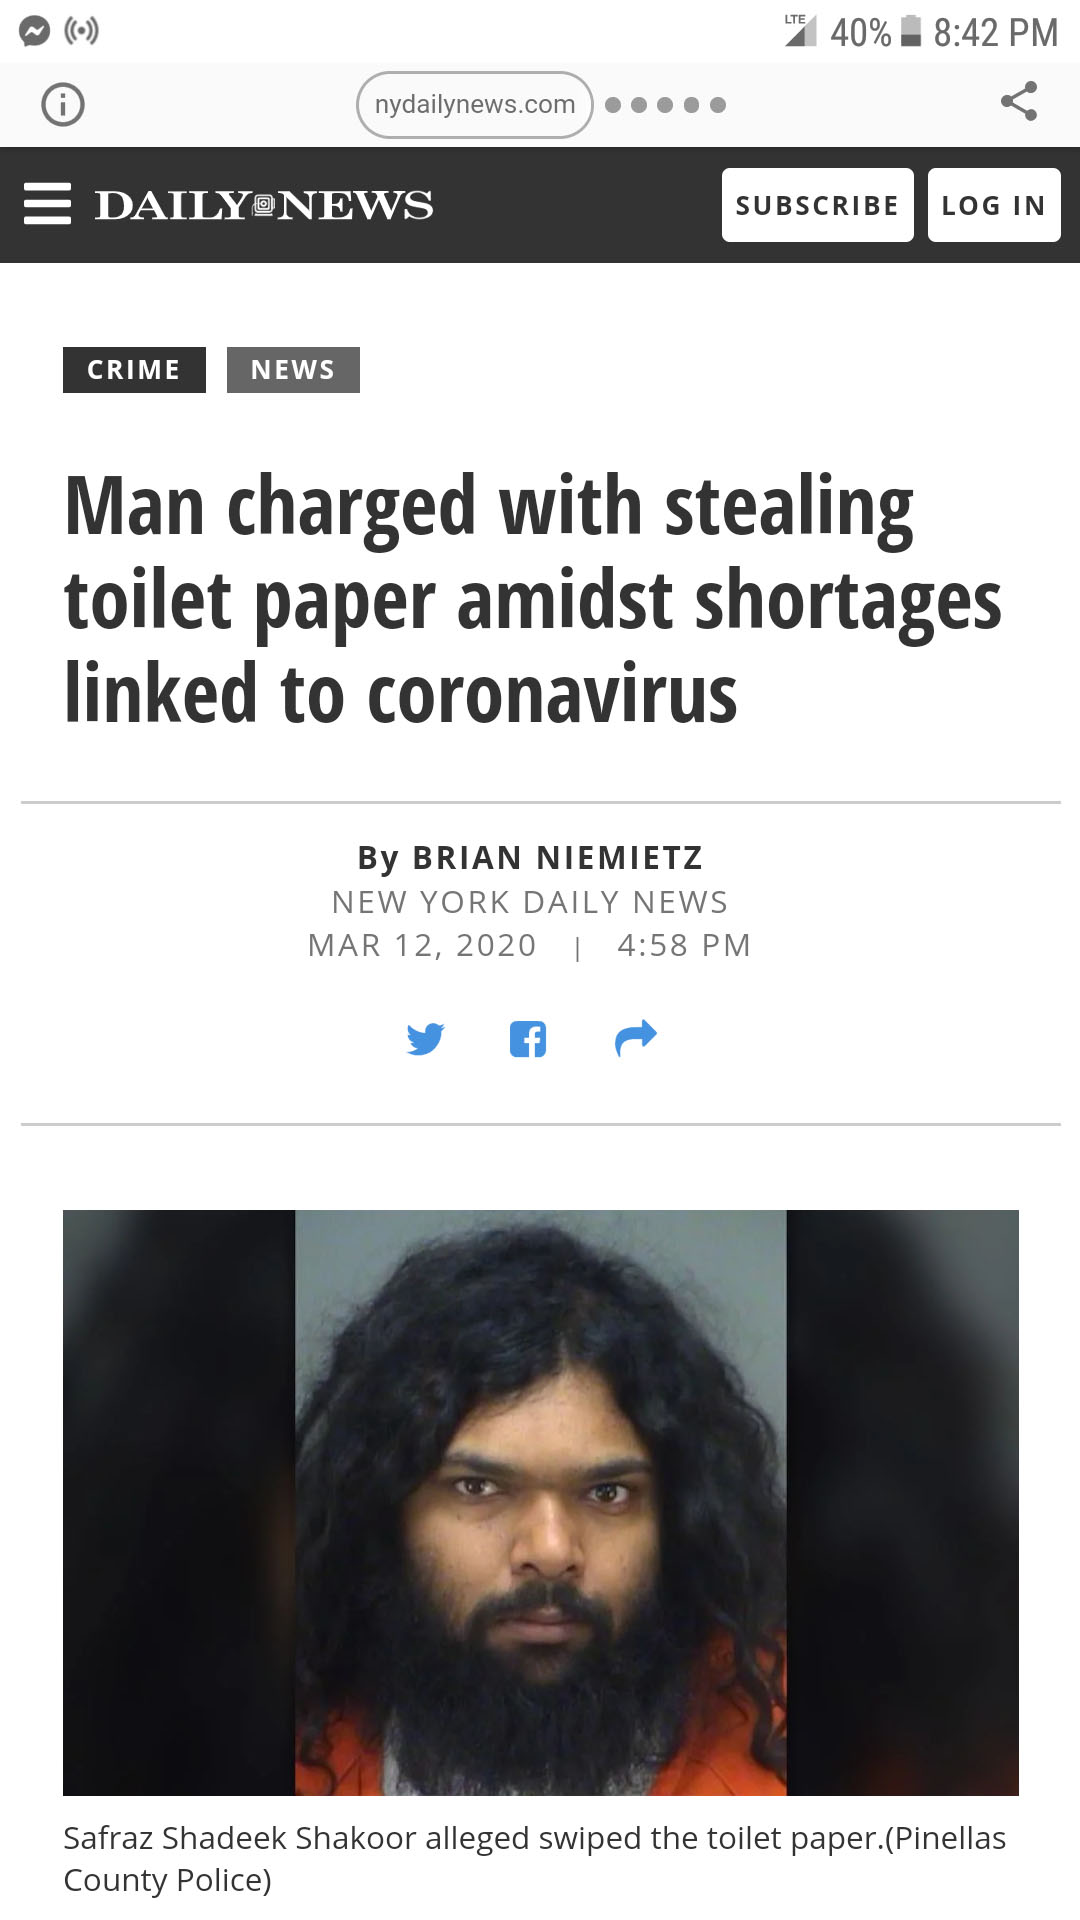 Florida Man is just as crazy as 2020 has been, and if you need any proof, check out these 2020 headlines featuring Florida Man.